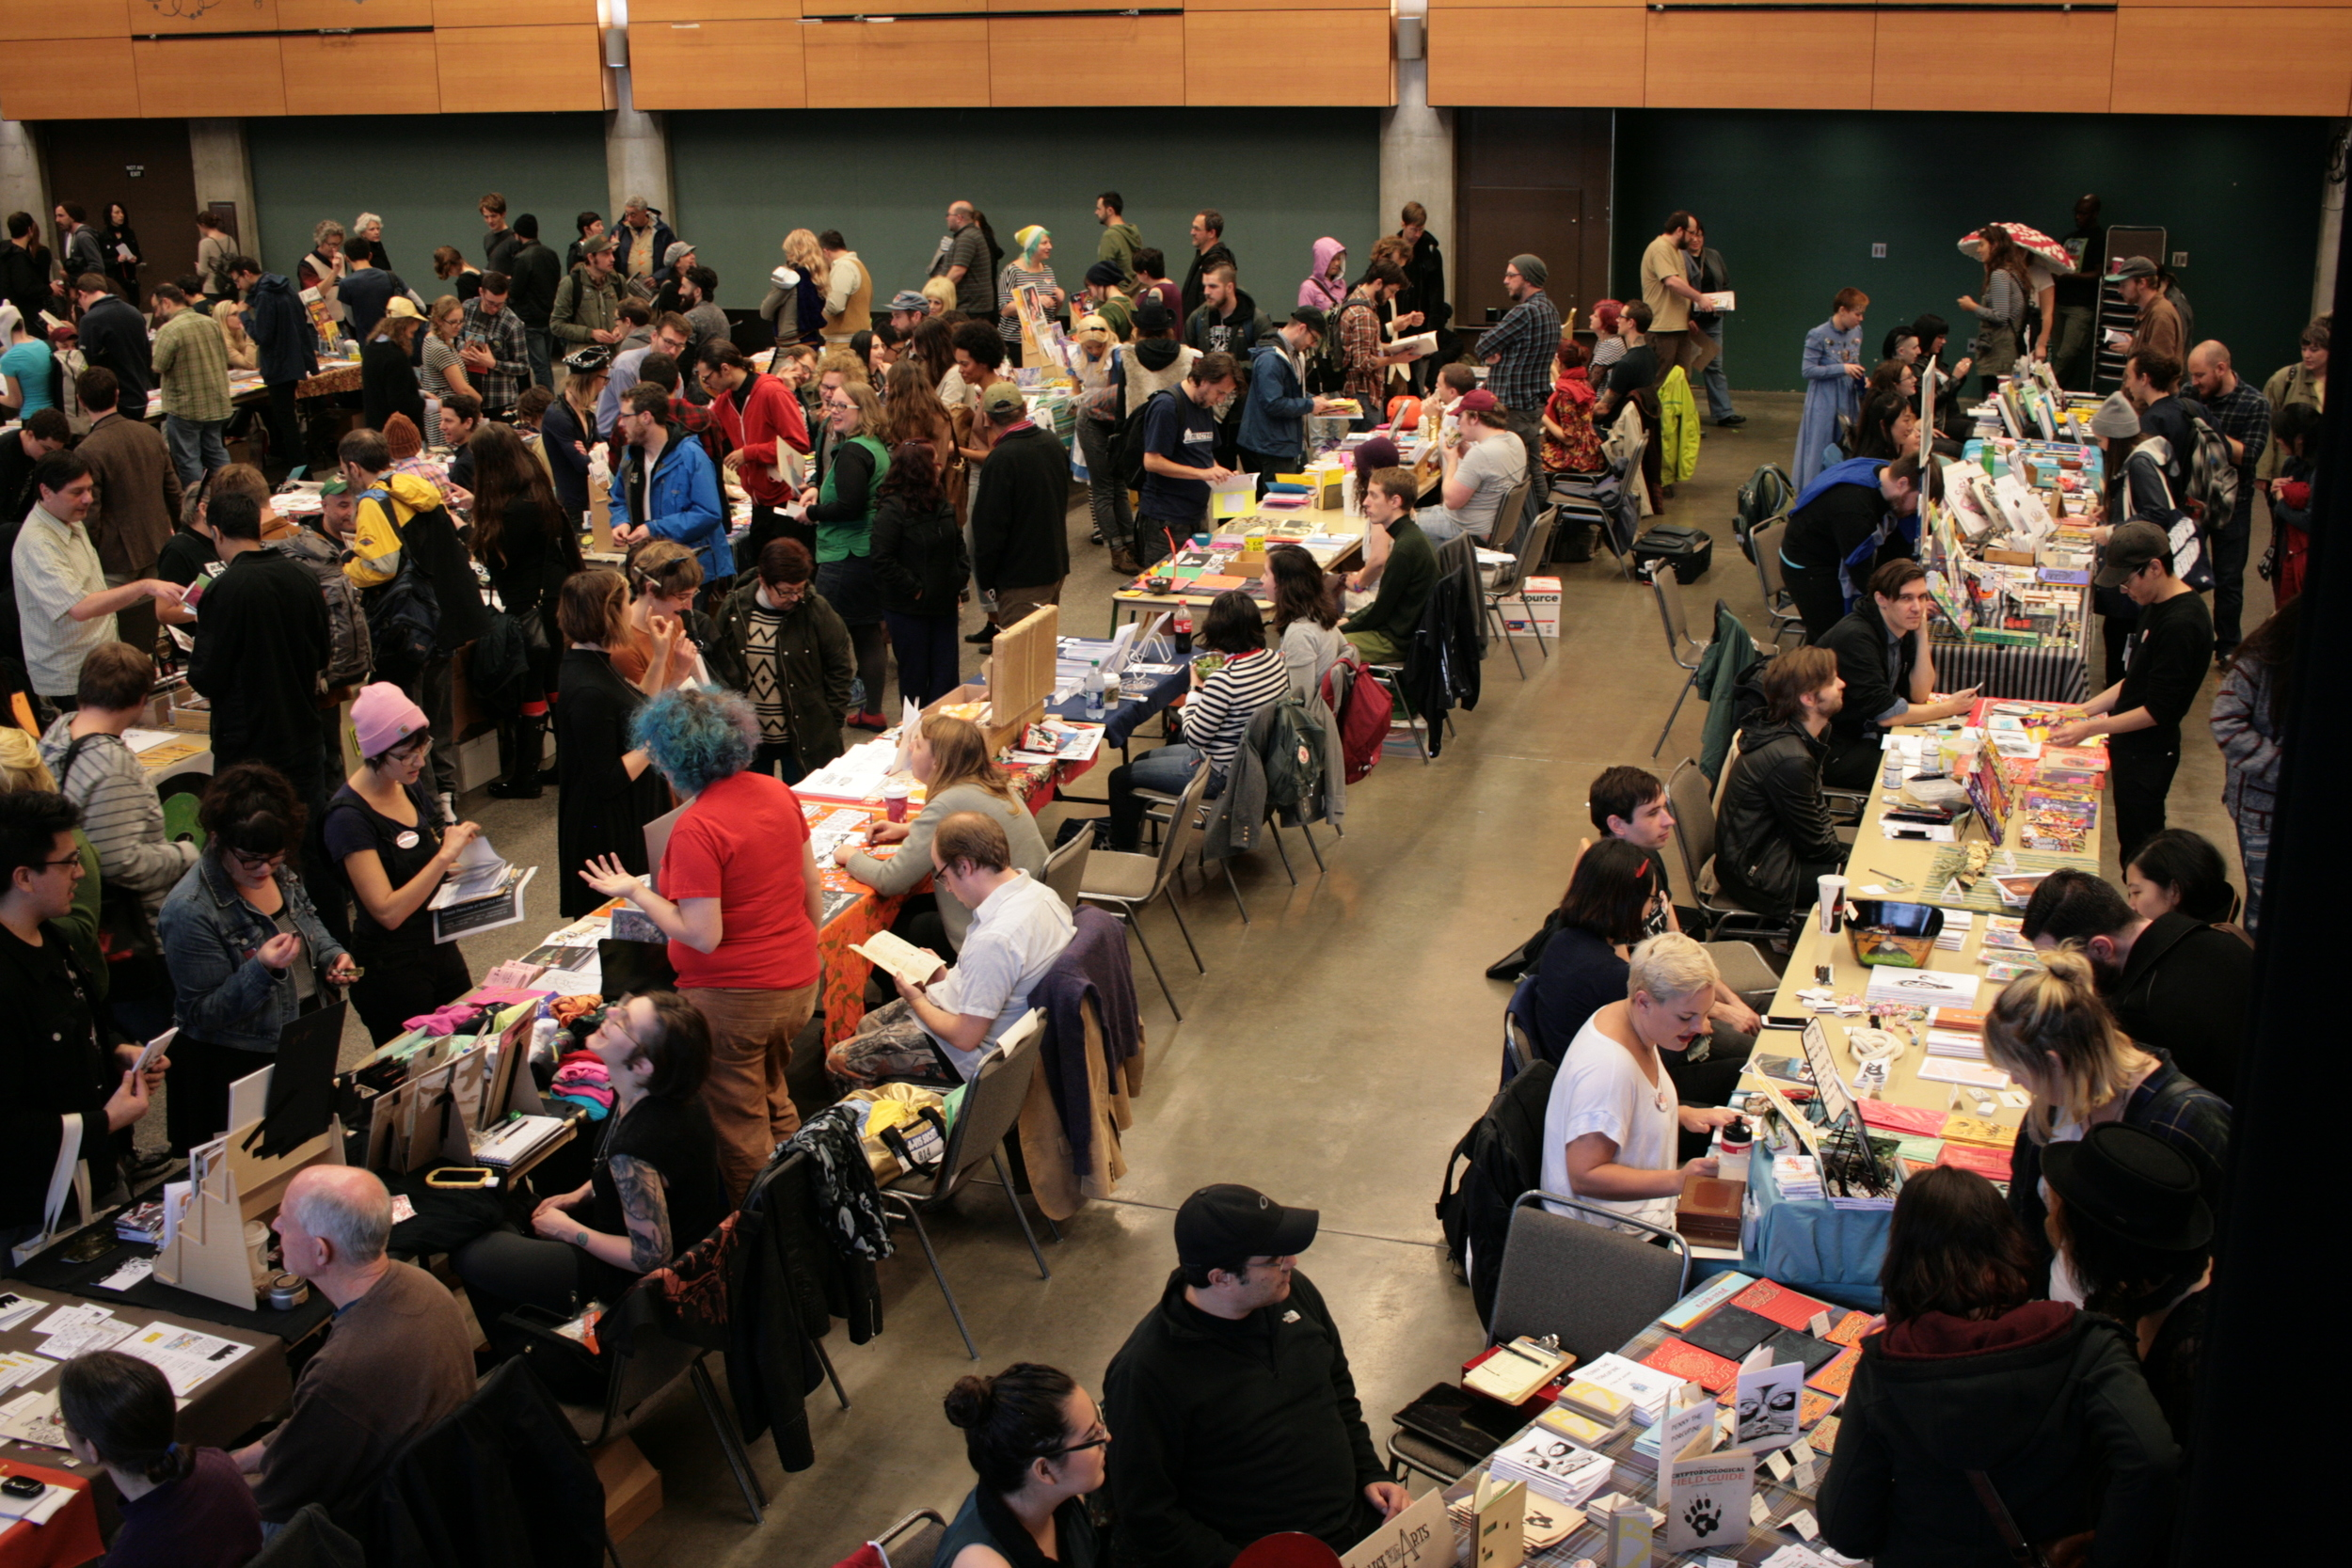 One side of the room. Chaos, beautiful comic chaos.